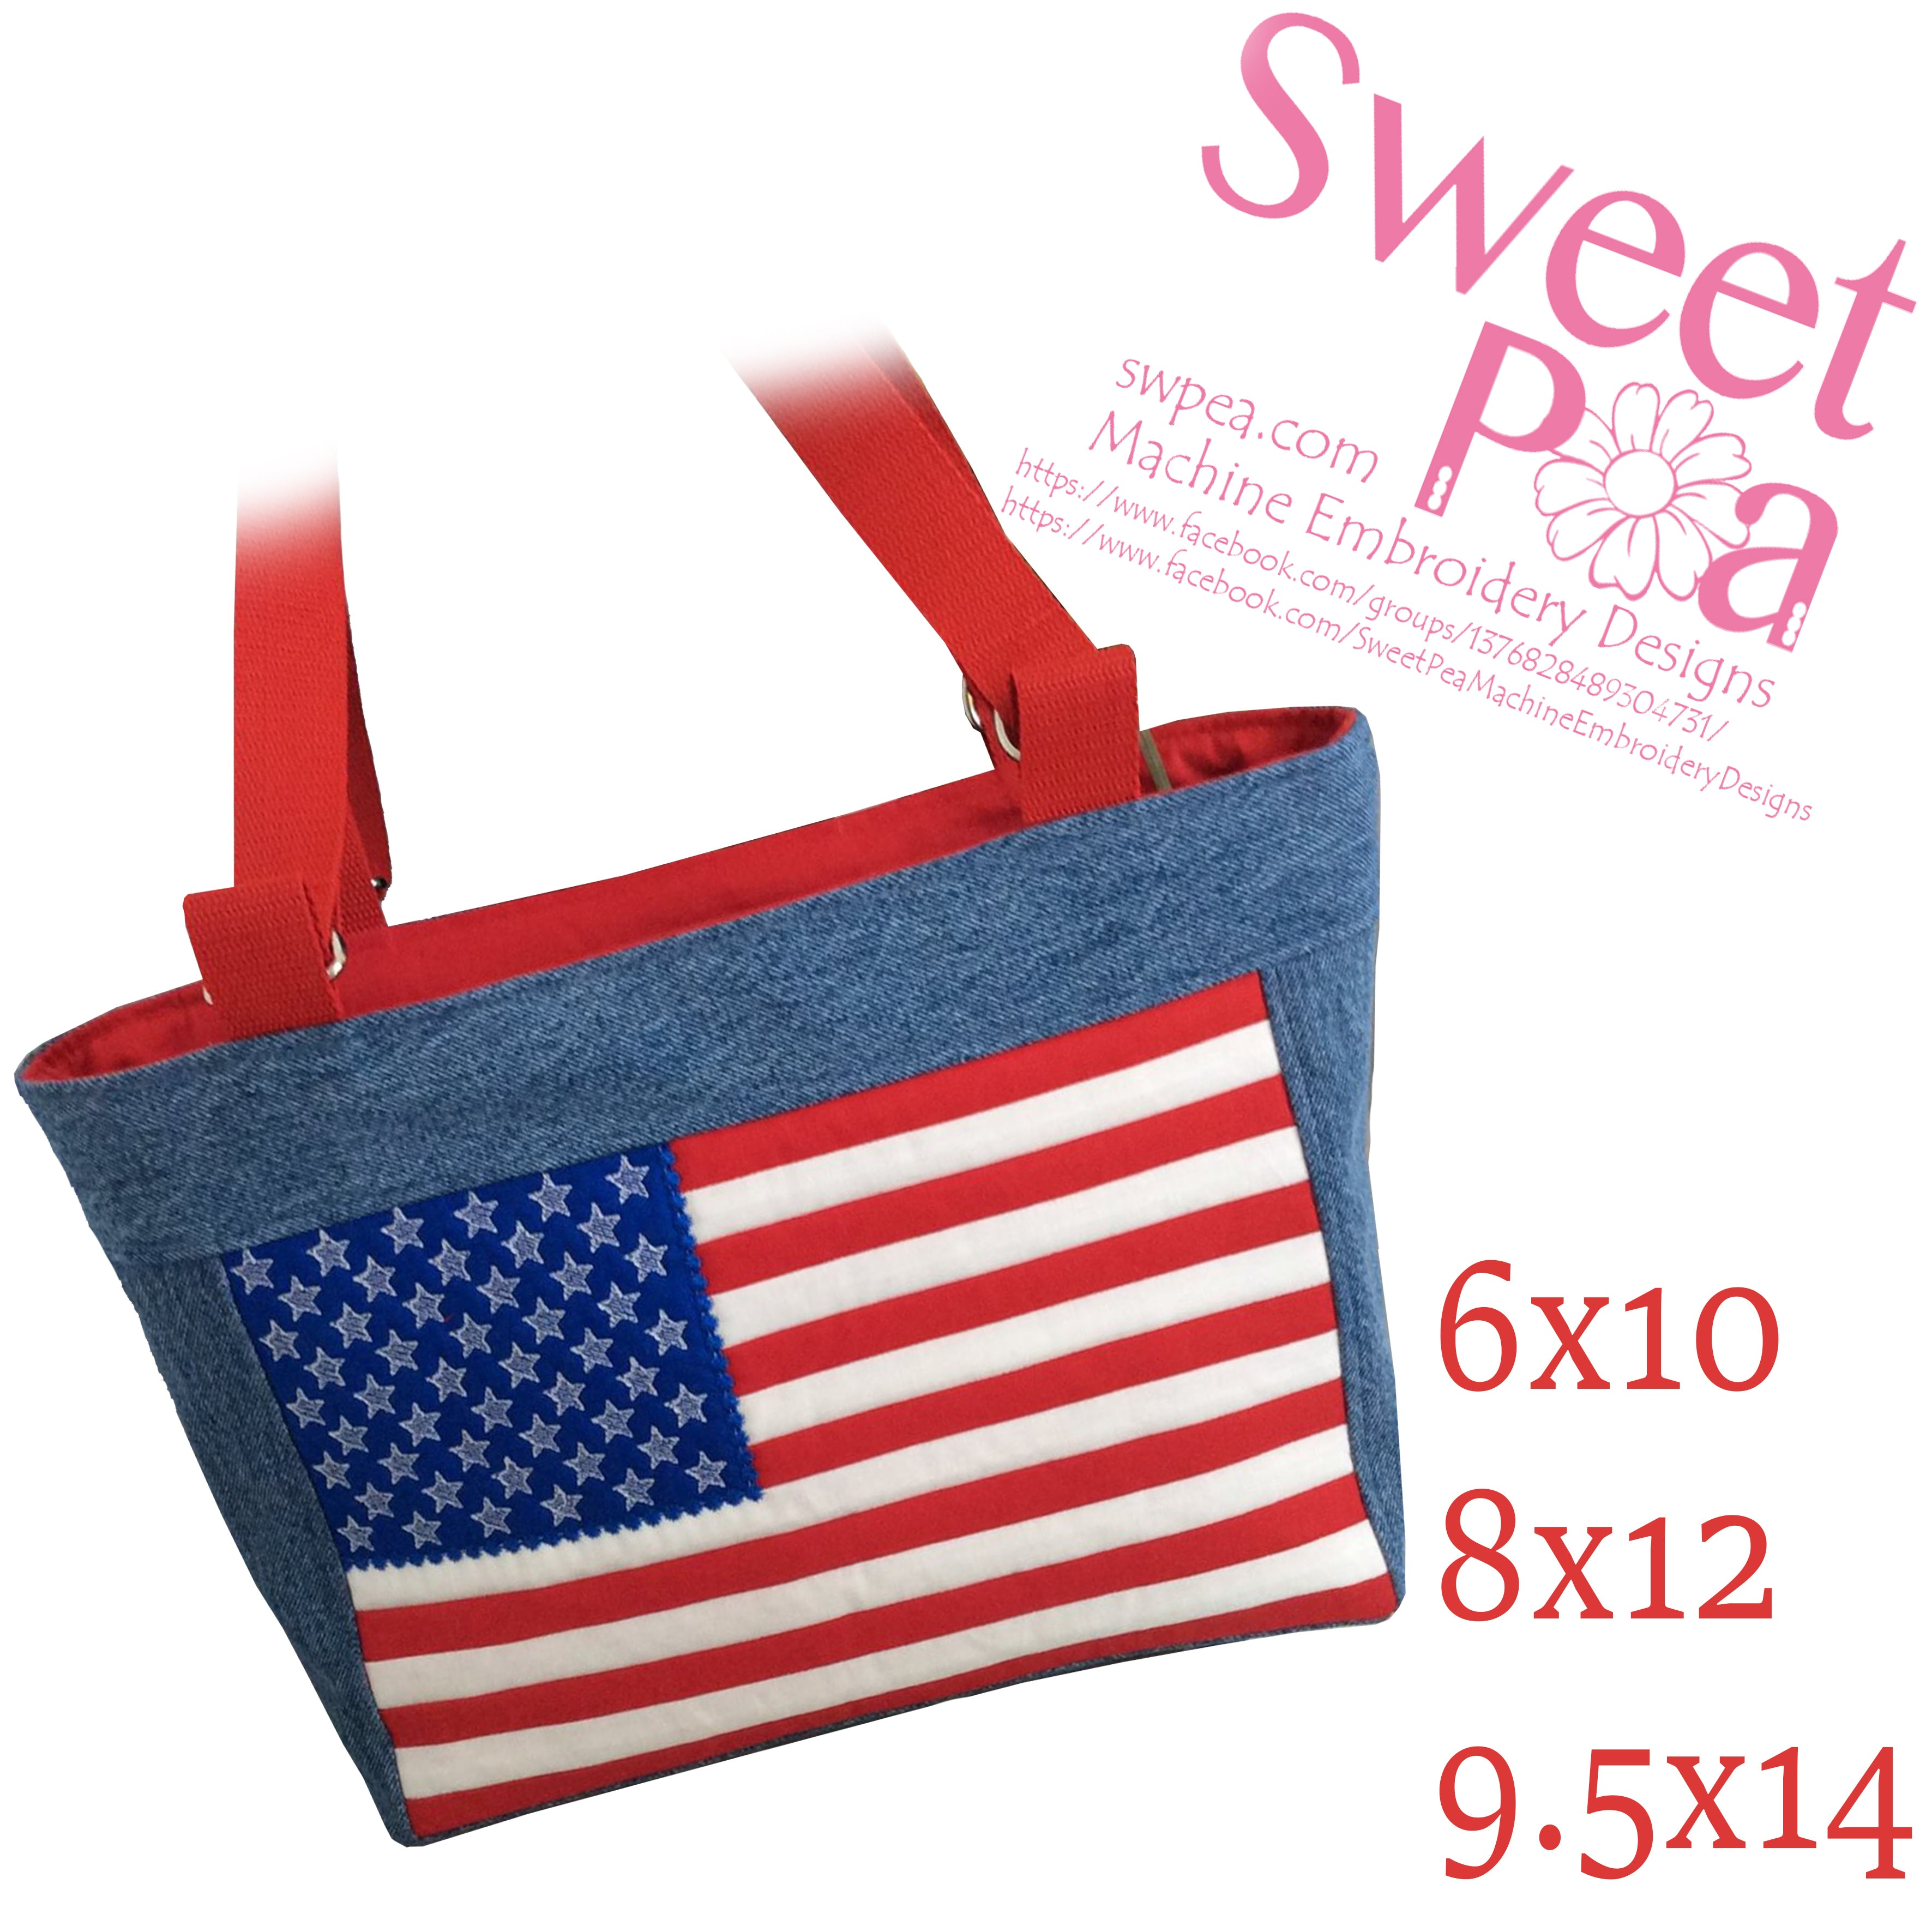 USA flag bag 6x10 8x12 9.5x14 in the hoop machine embroidery design